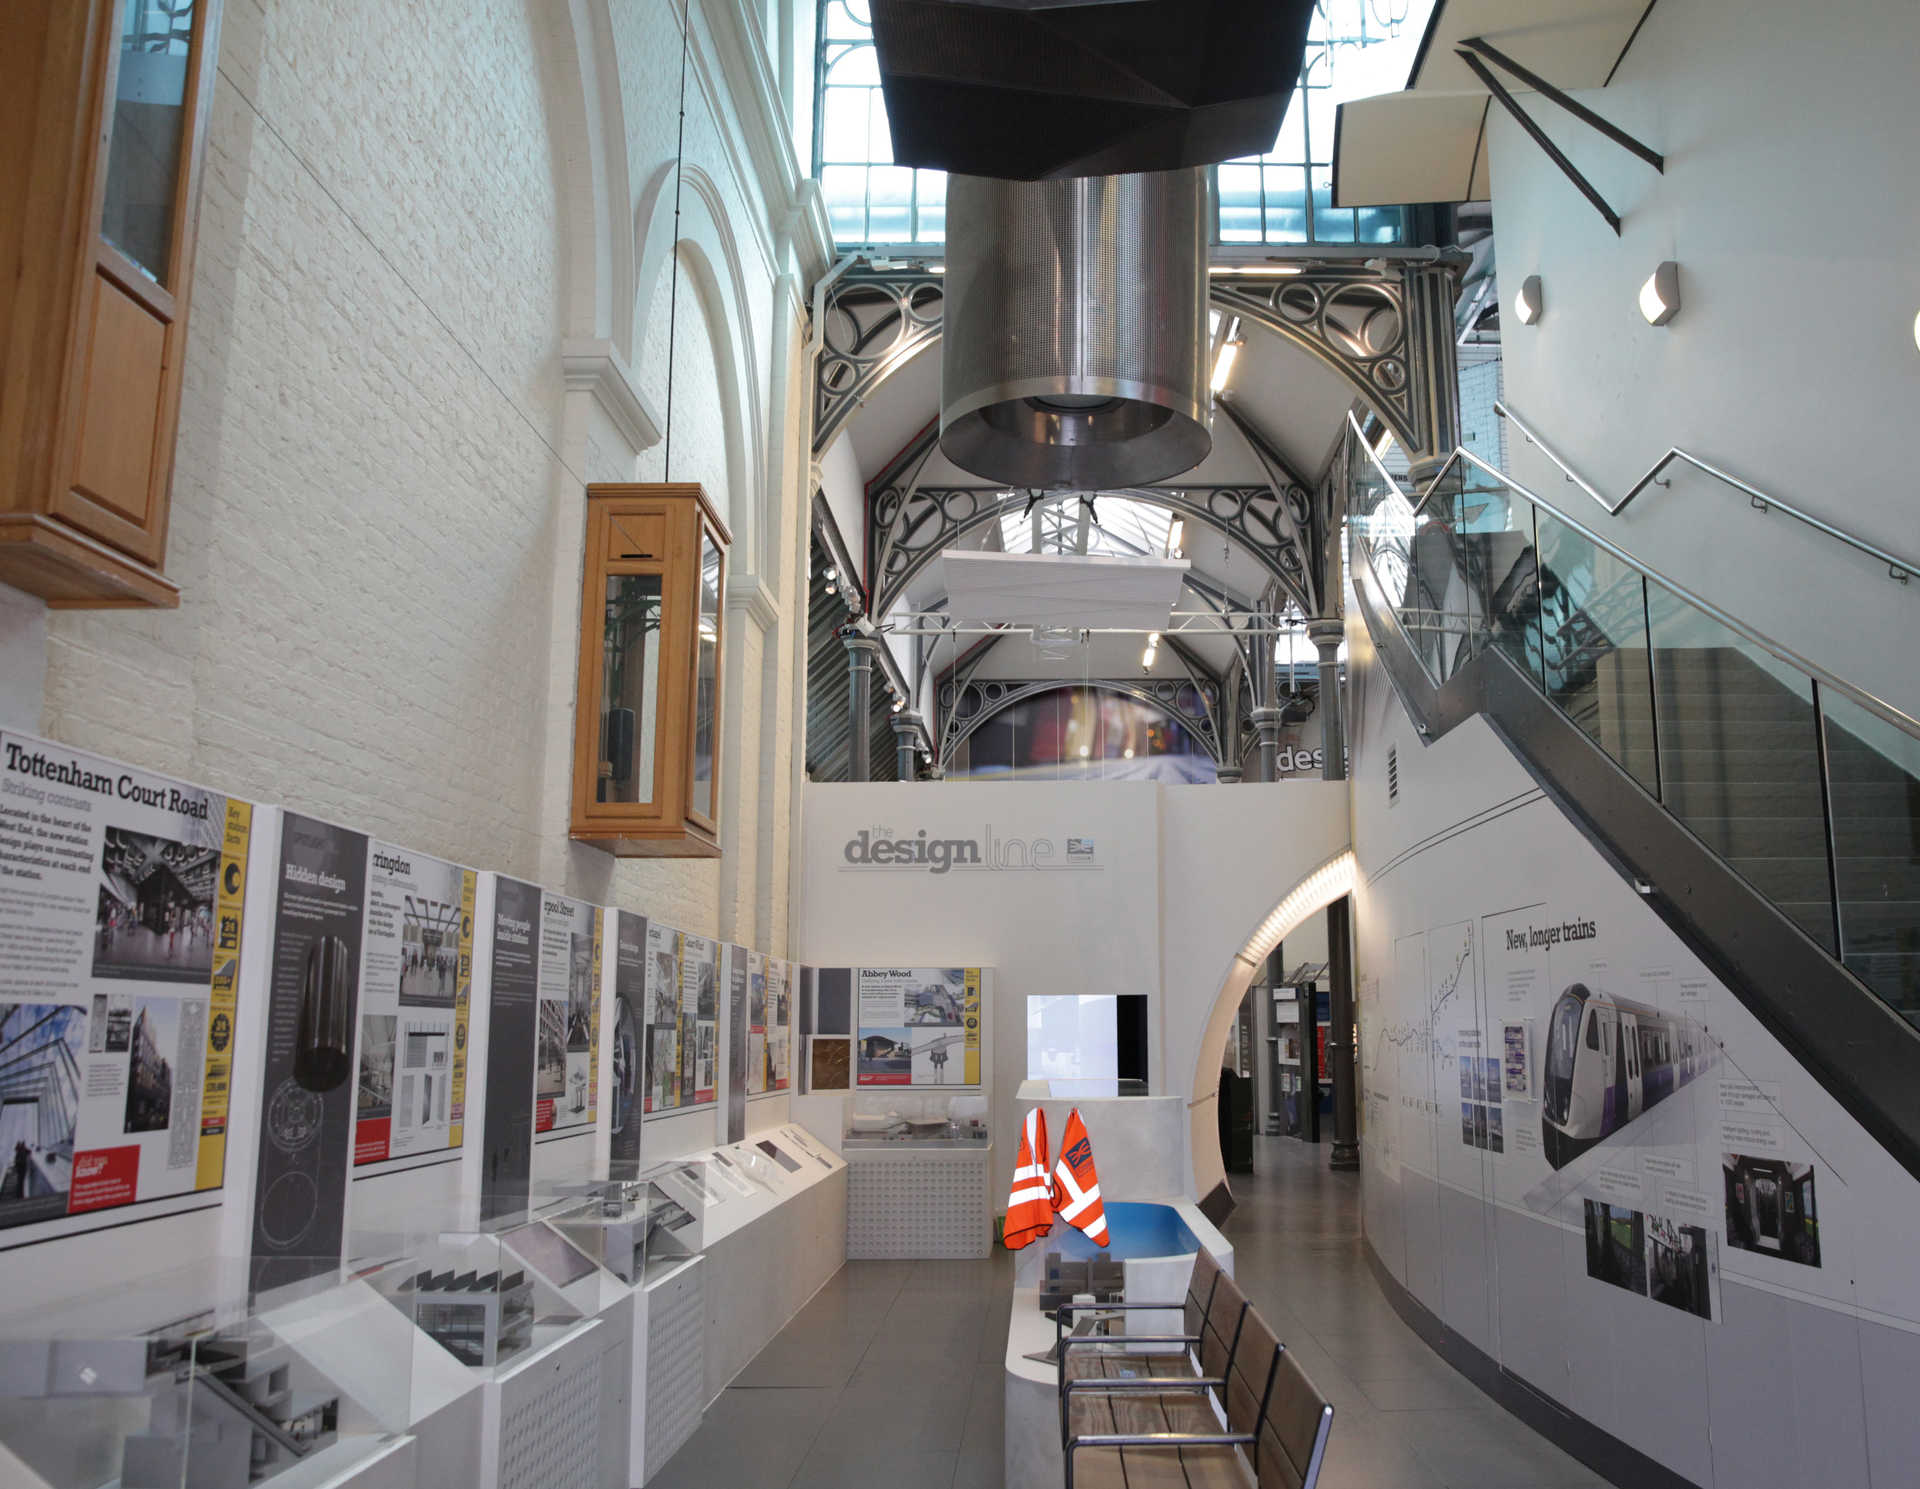 D Exhibition London : Design line exhibition opens as crossrail publishes new